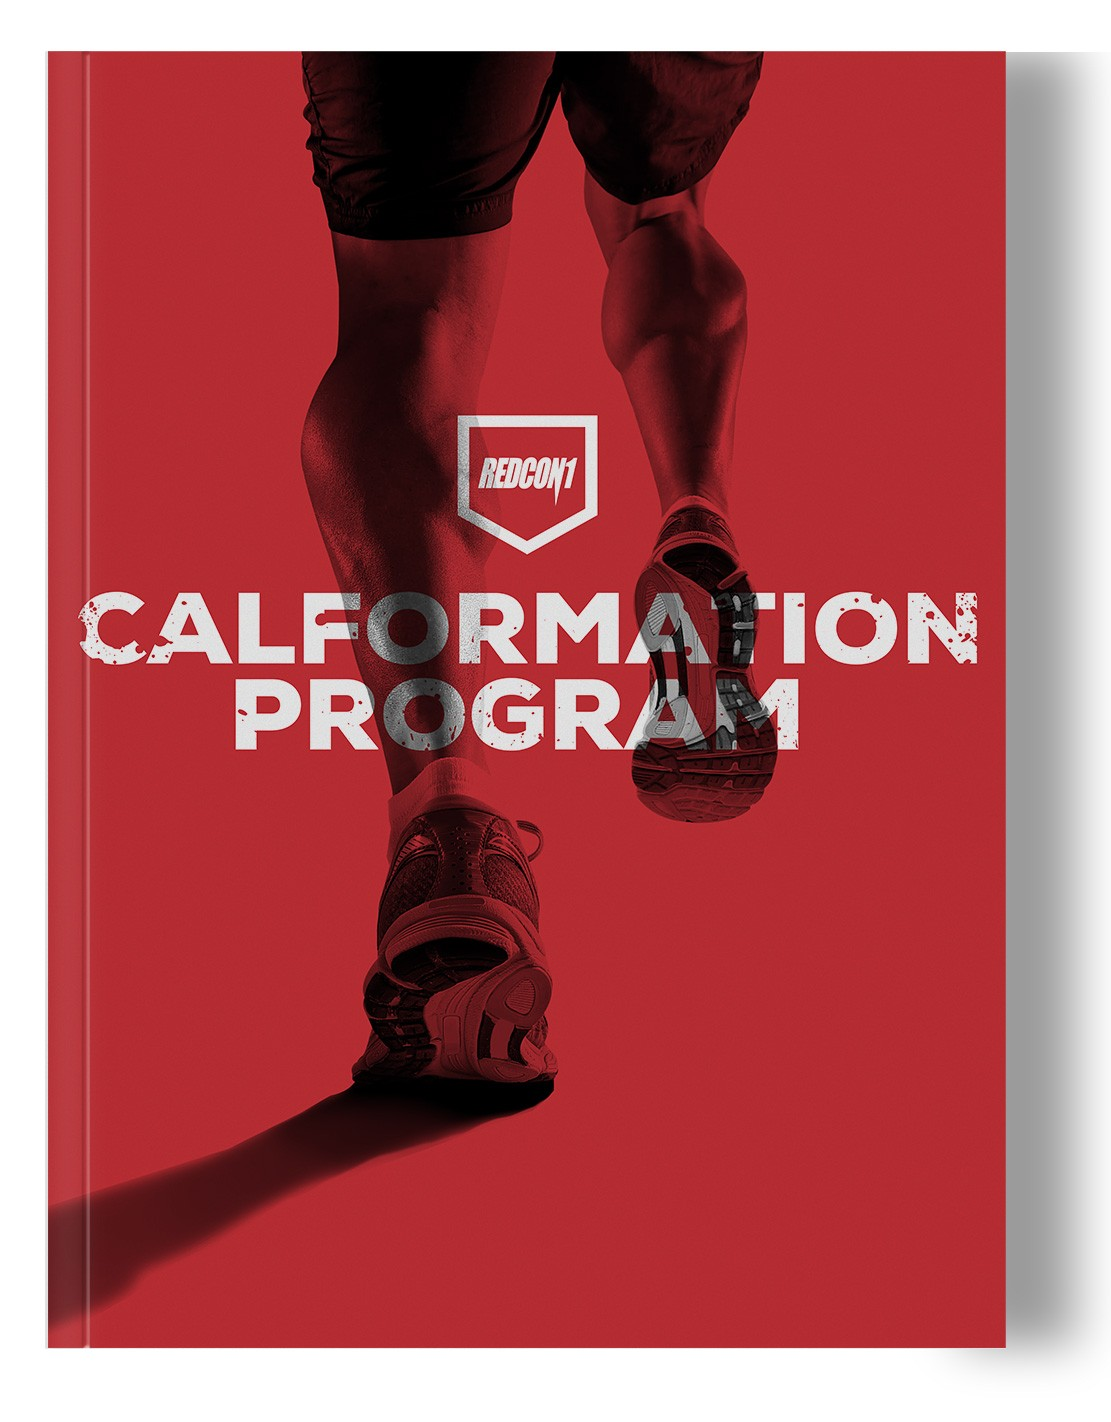 The Calformation